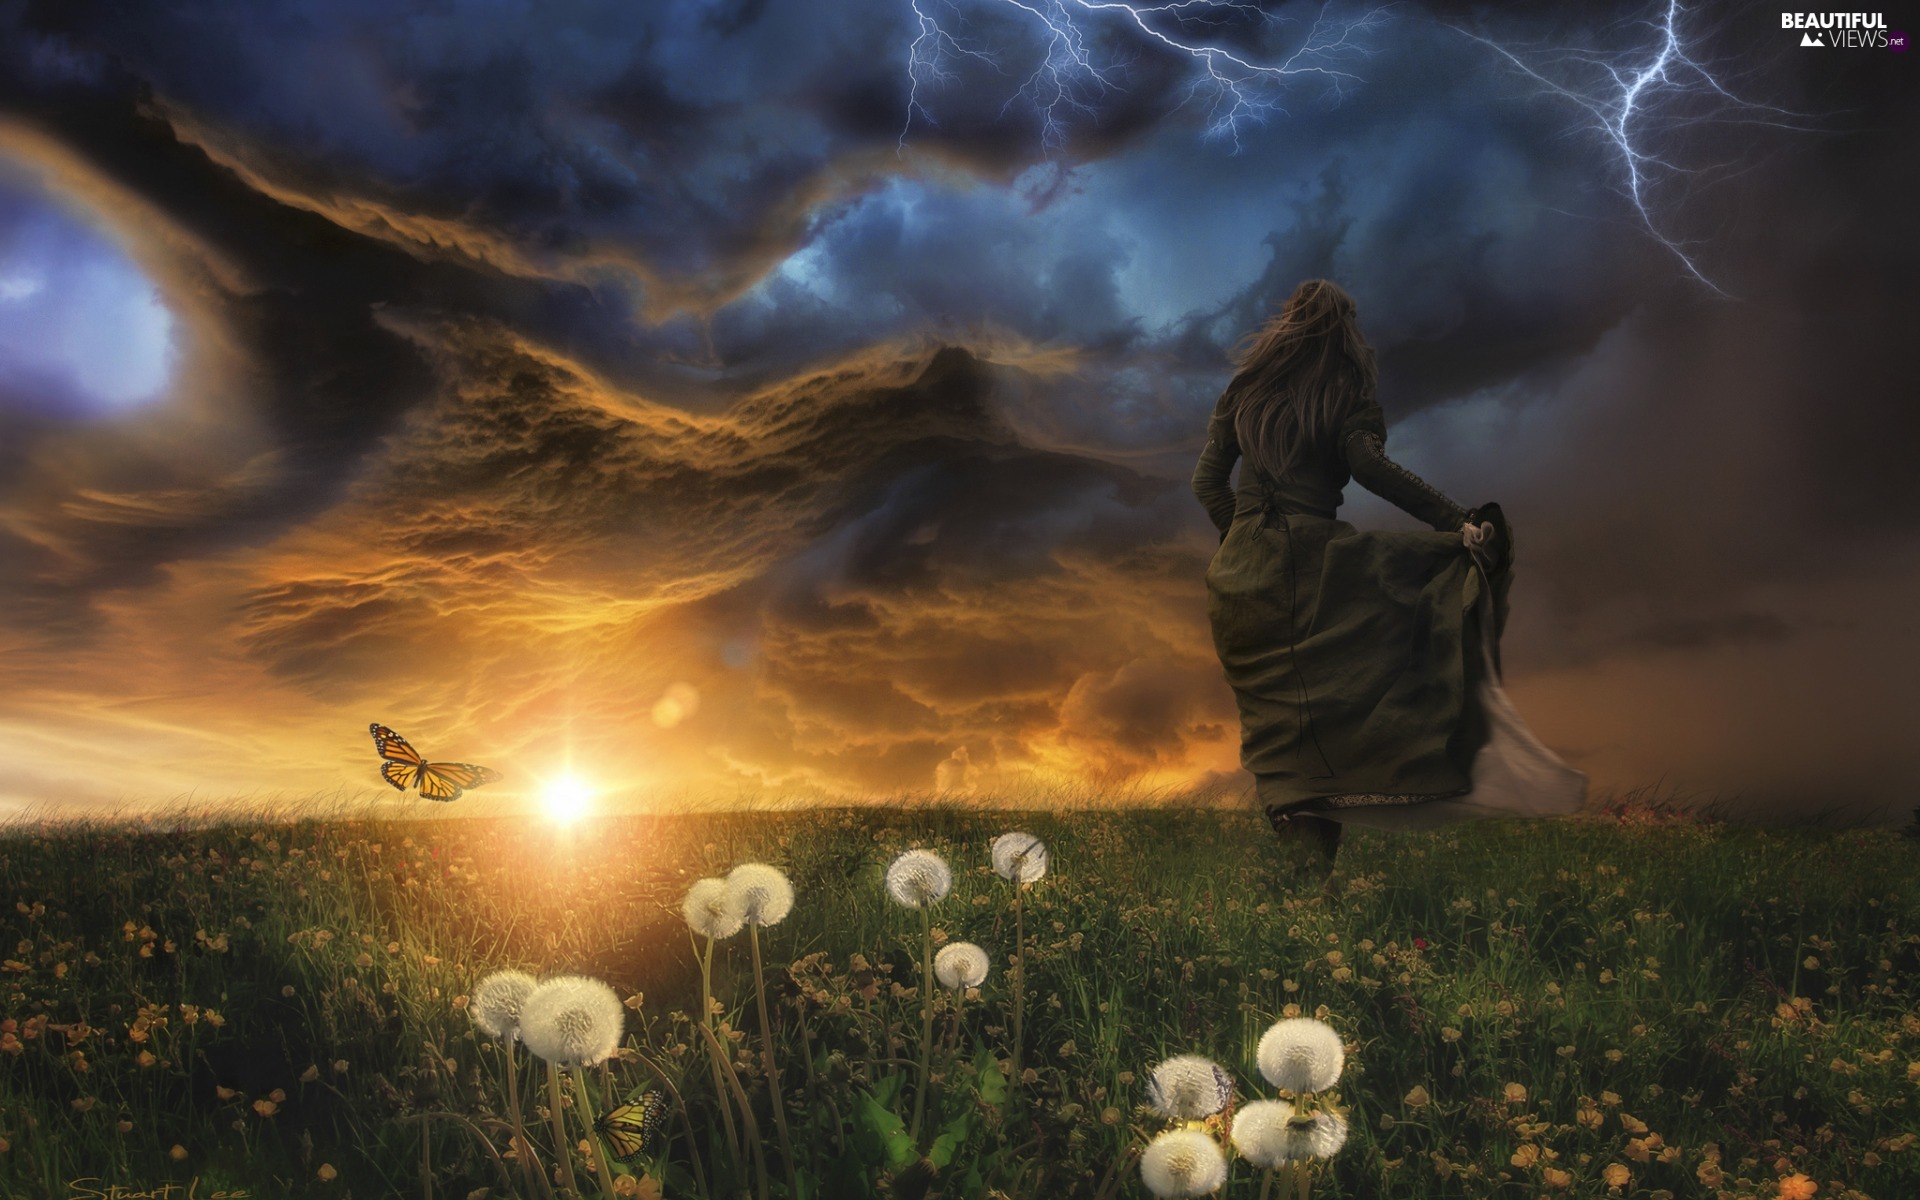 dandelions, Storm, Women, fantasy, butterfly, Meadow